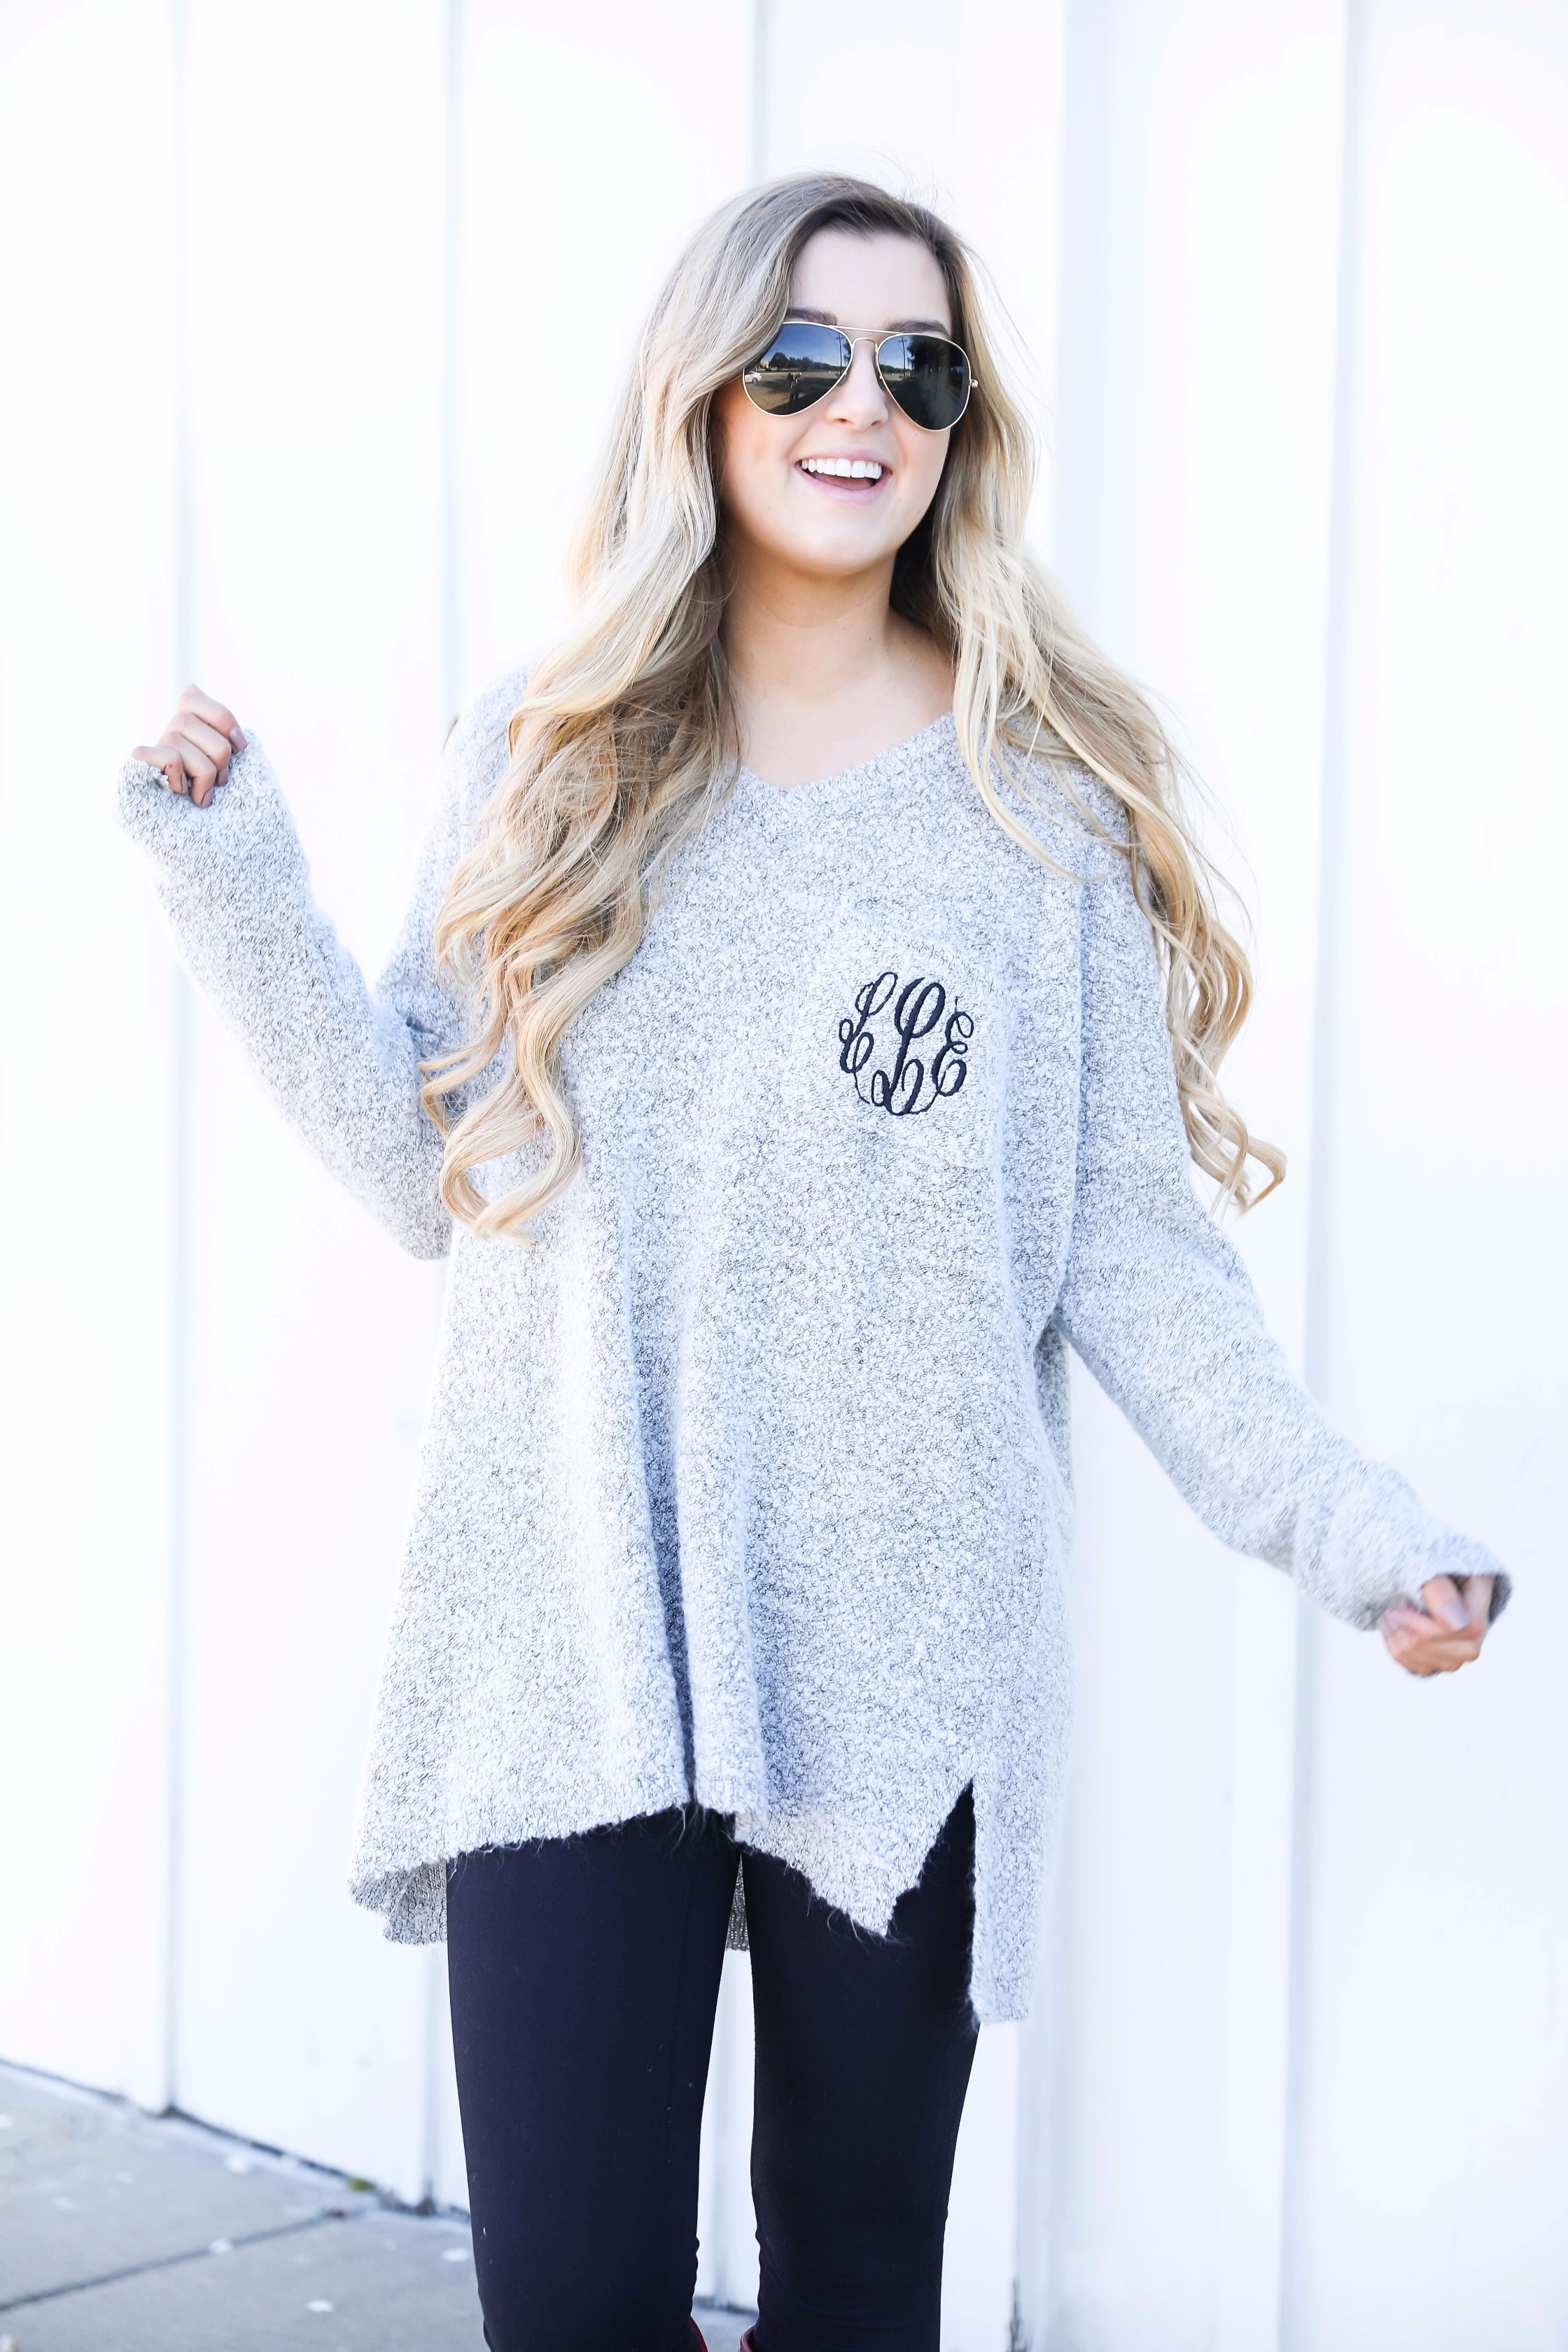 How to tie blanket scarves! This cute Marley Lilly Monogrammed Boyfriend Sweater and ilymix scarf make for the cutest fall outfit! Find all the details on fashion blog daily dose of charm by Lauren Lindmark